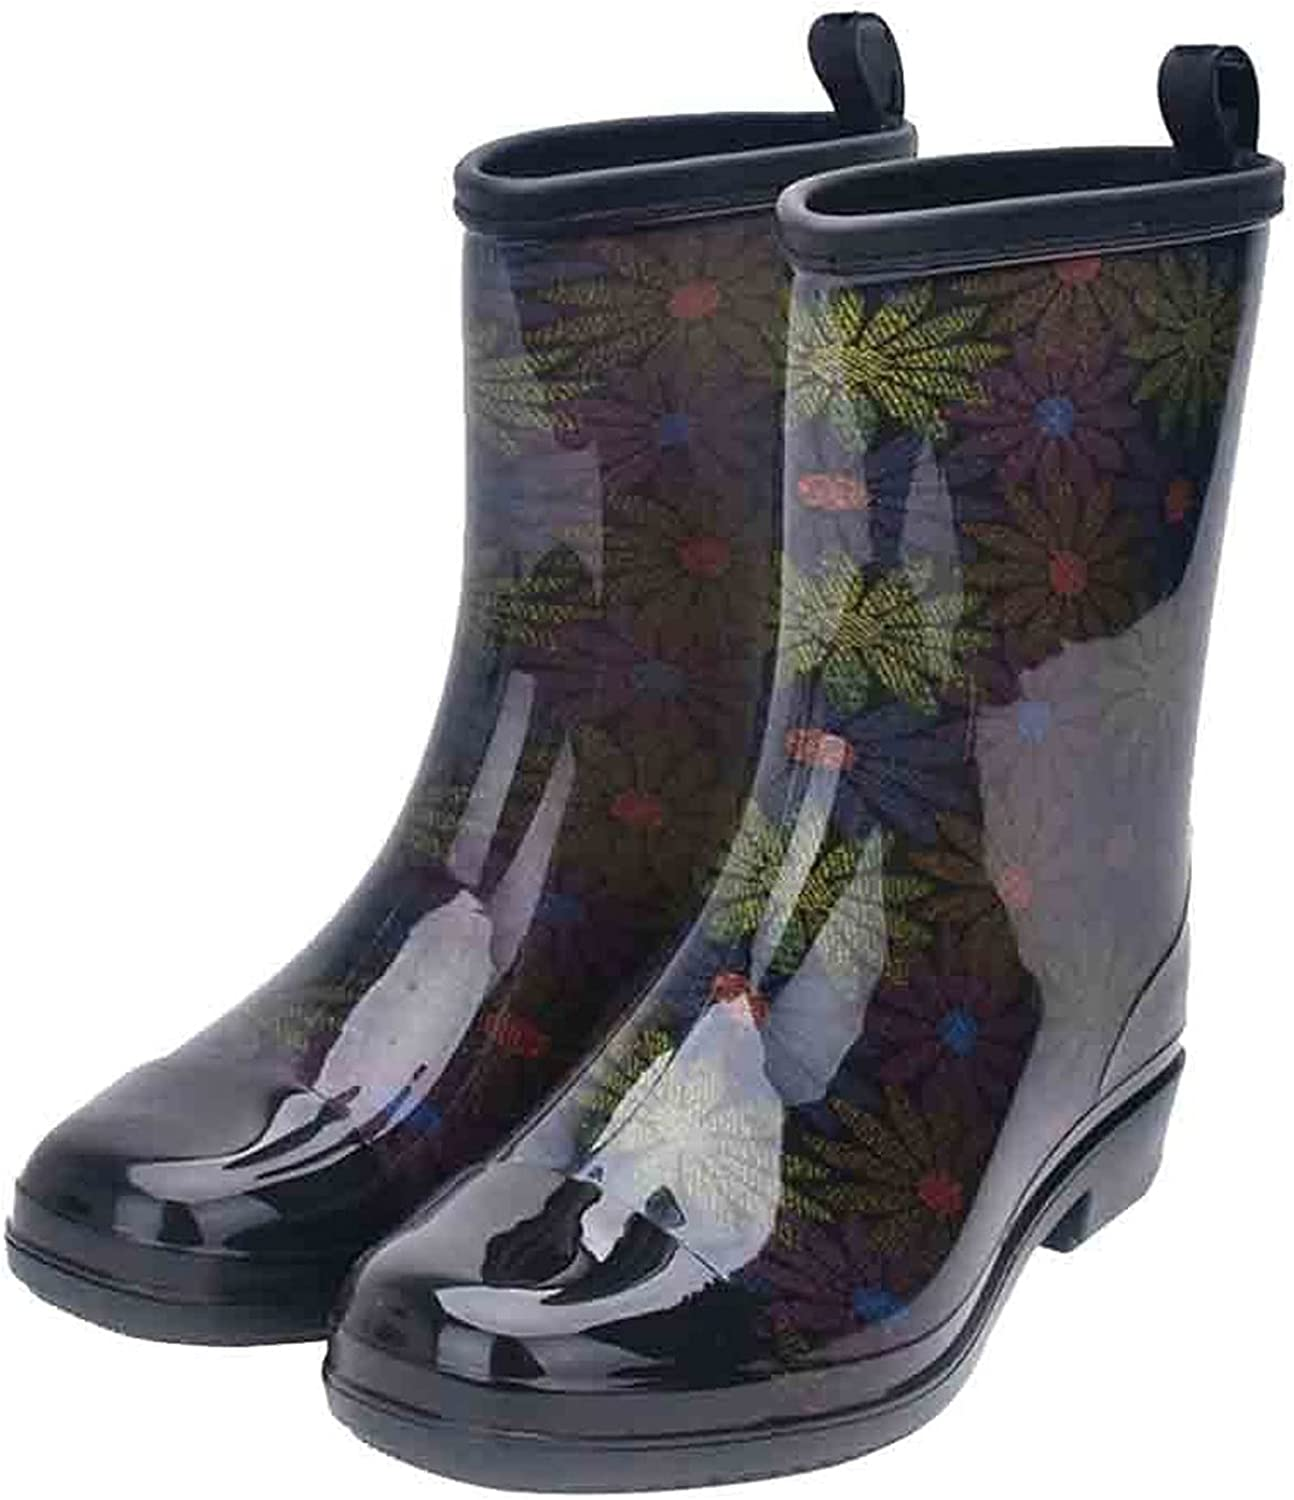 Rubber Rain Boots High quality Jelly Lined Water Mid Ladies Calf Bo Resistant unisex